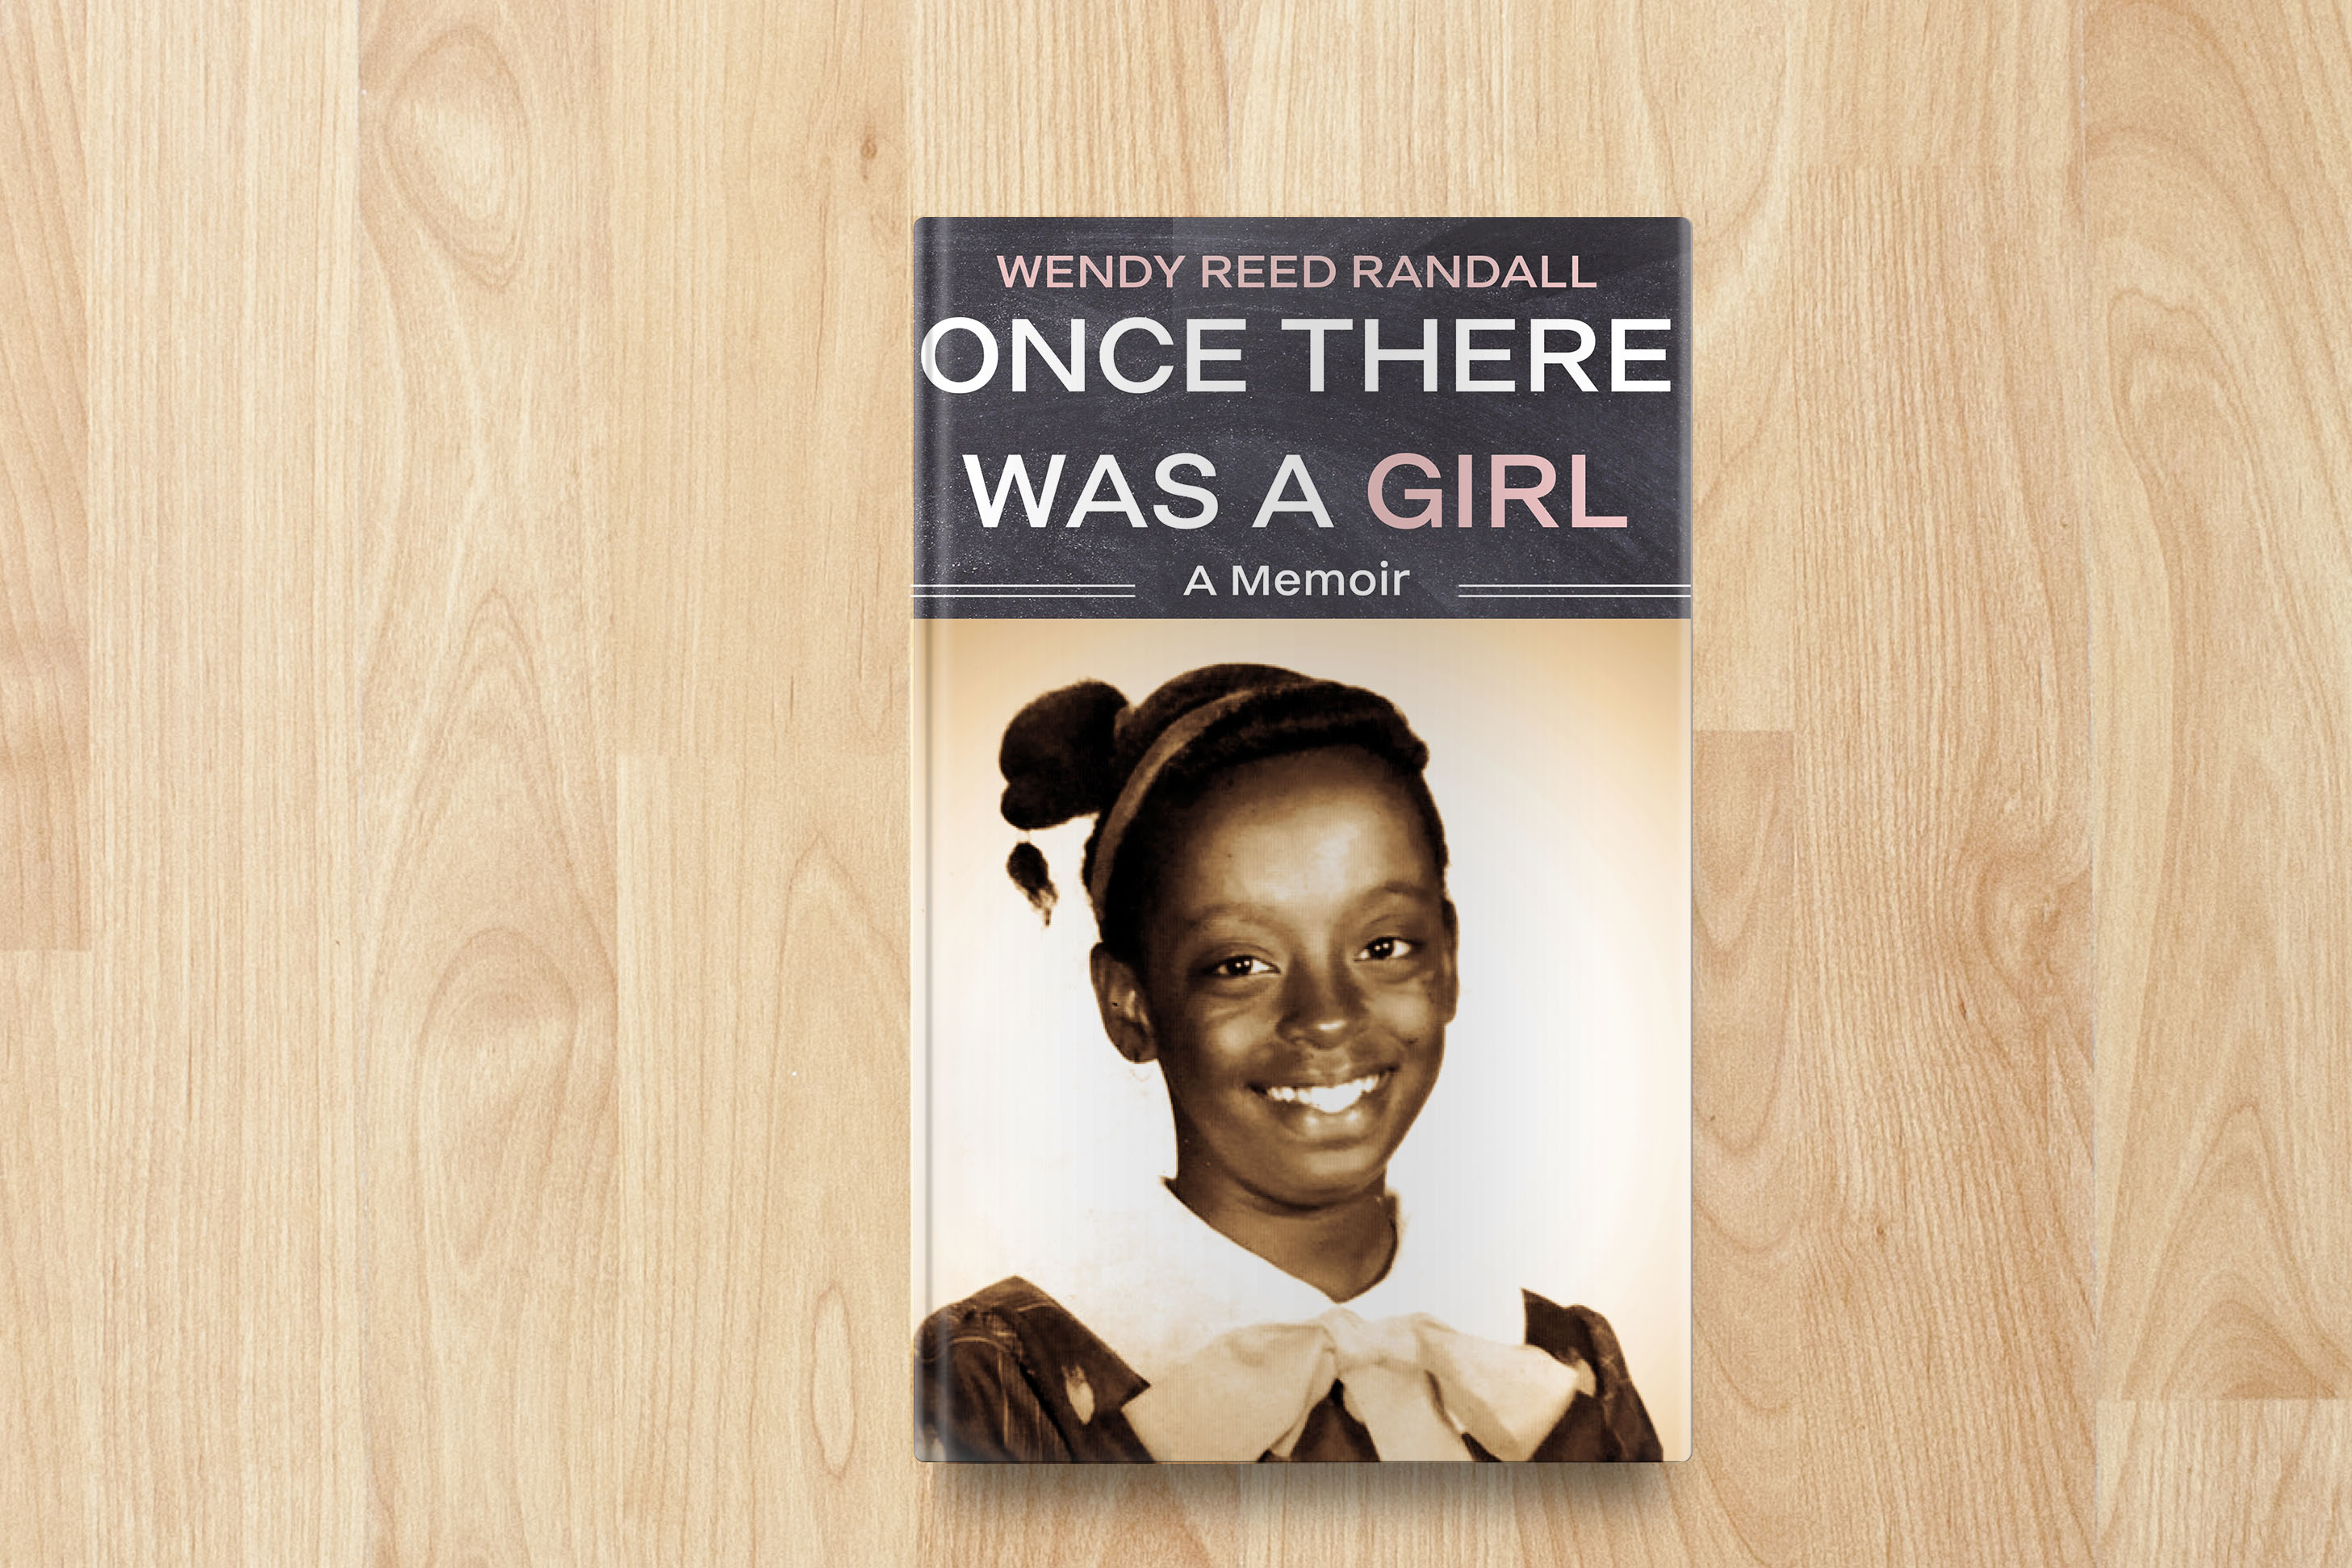 Once There Was a Girl - A Memoir that demonstrates grit, courage, and strong belief.